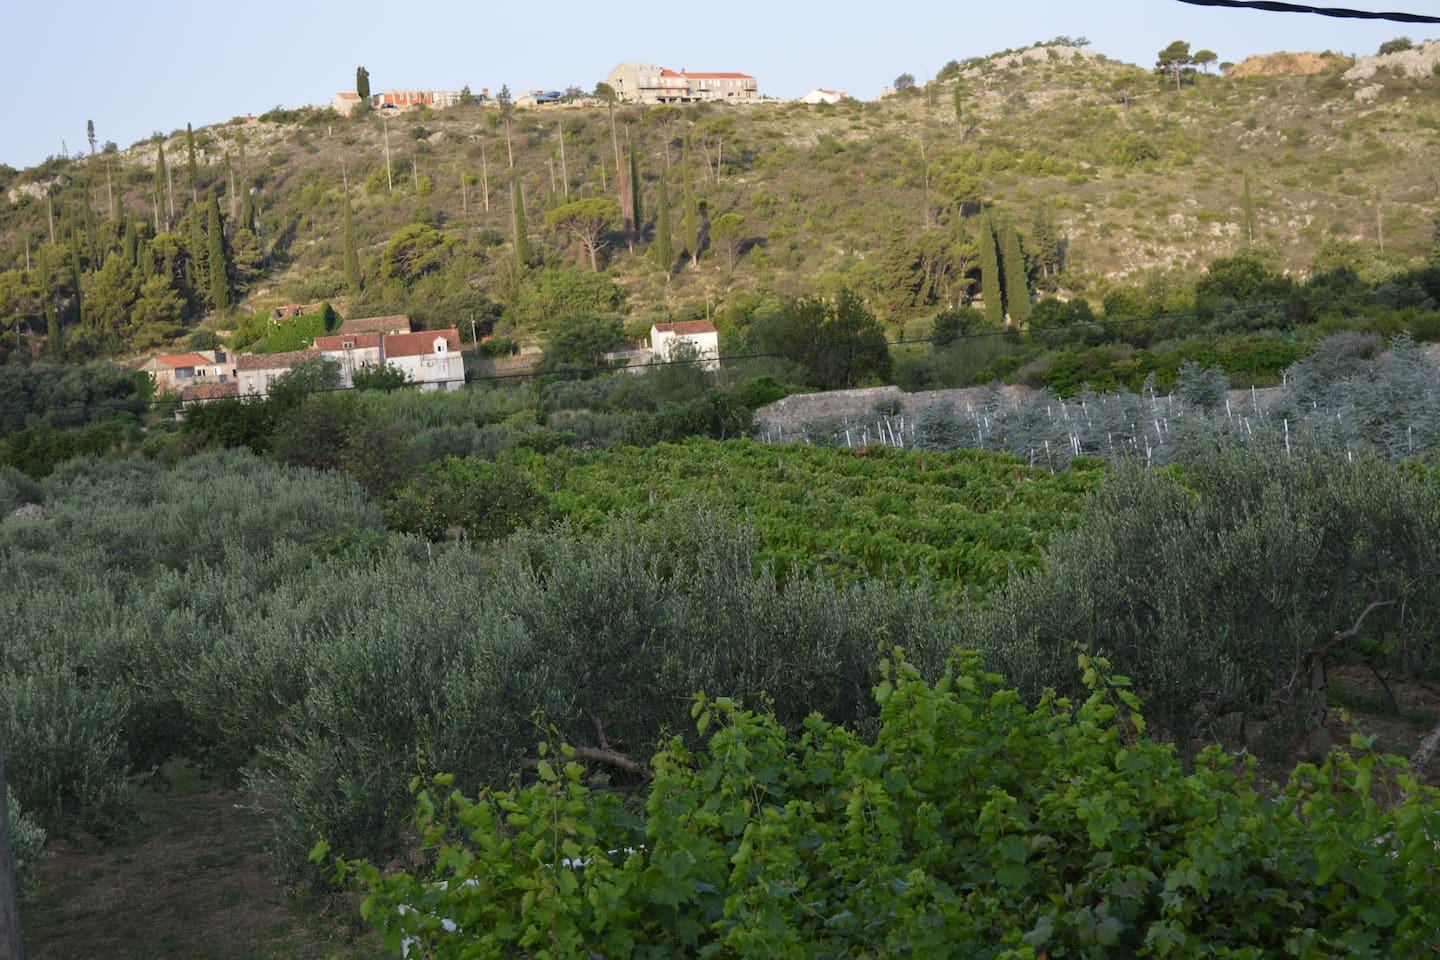 Olive grove, vine yard and eucalyptus across the road, we are in the heart of the valley but only 8 mins drive to a sandy beach without stairs and 15 minutes drive to Old Town Dubrovnik.